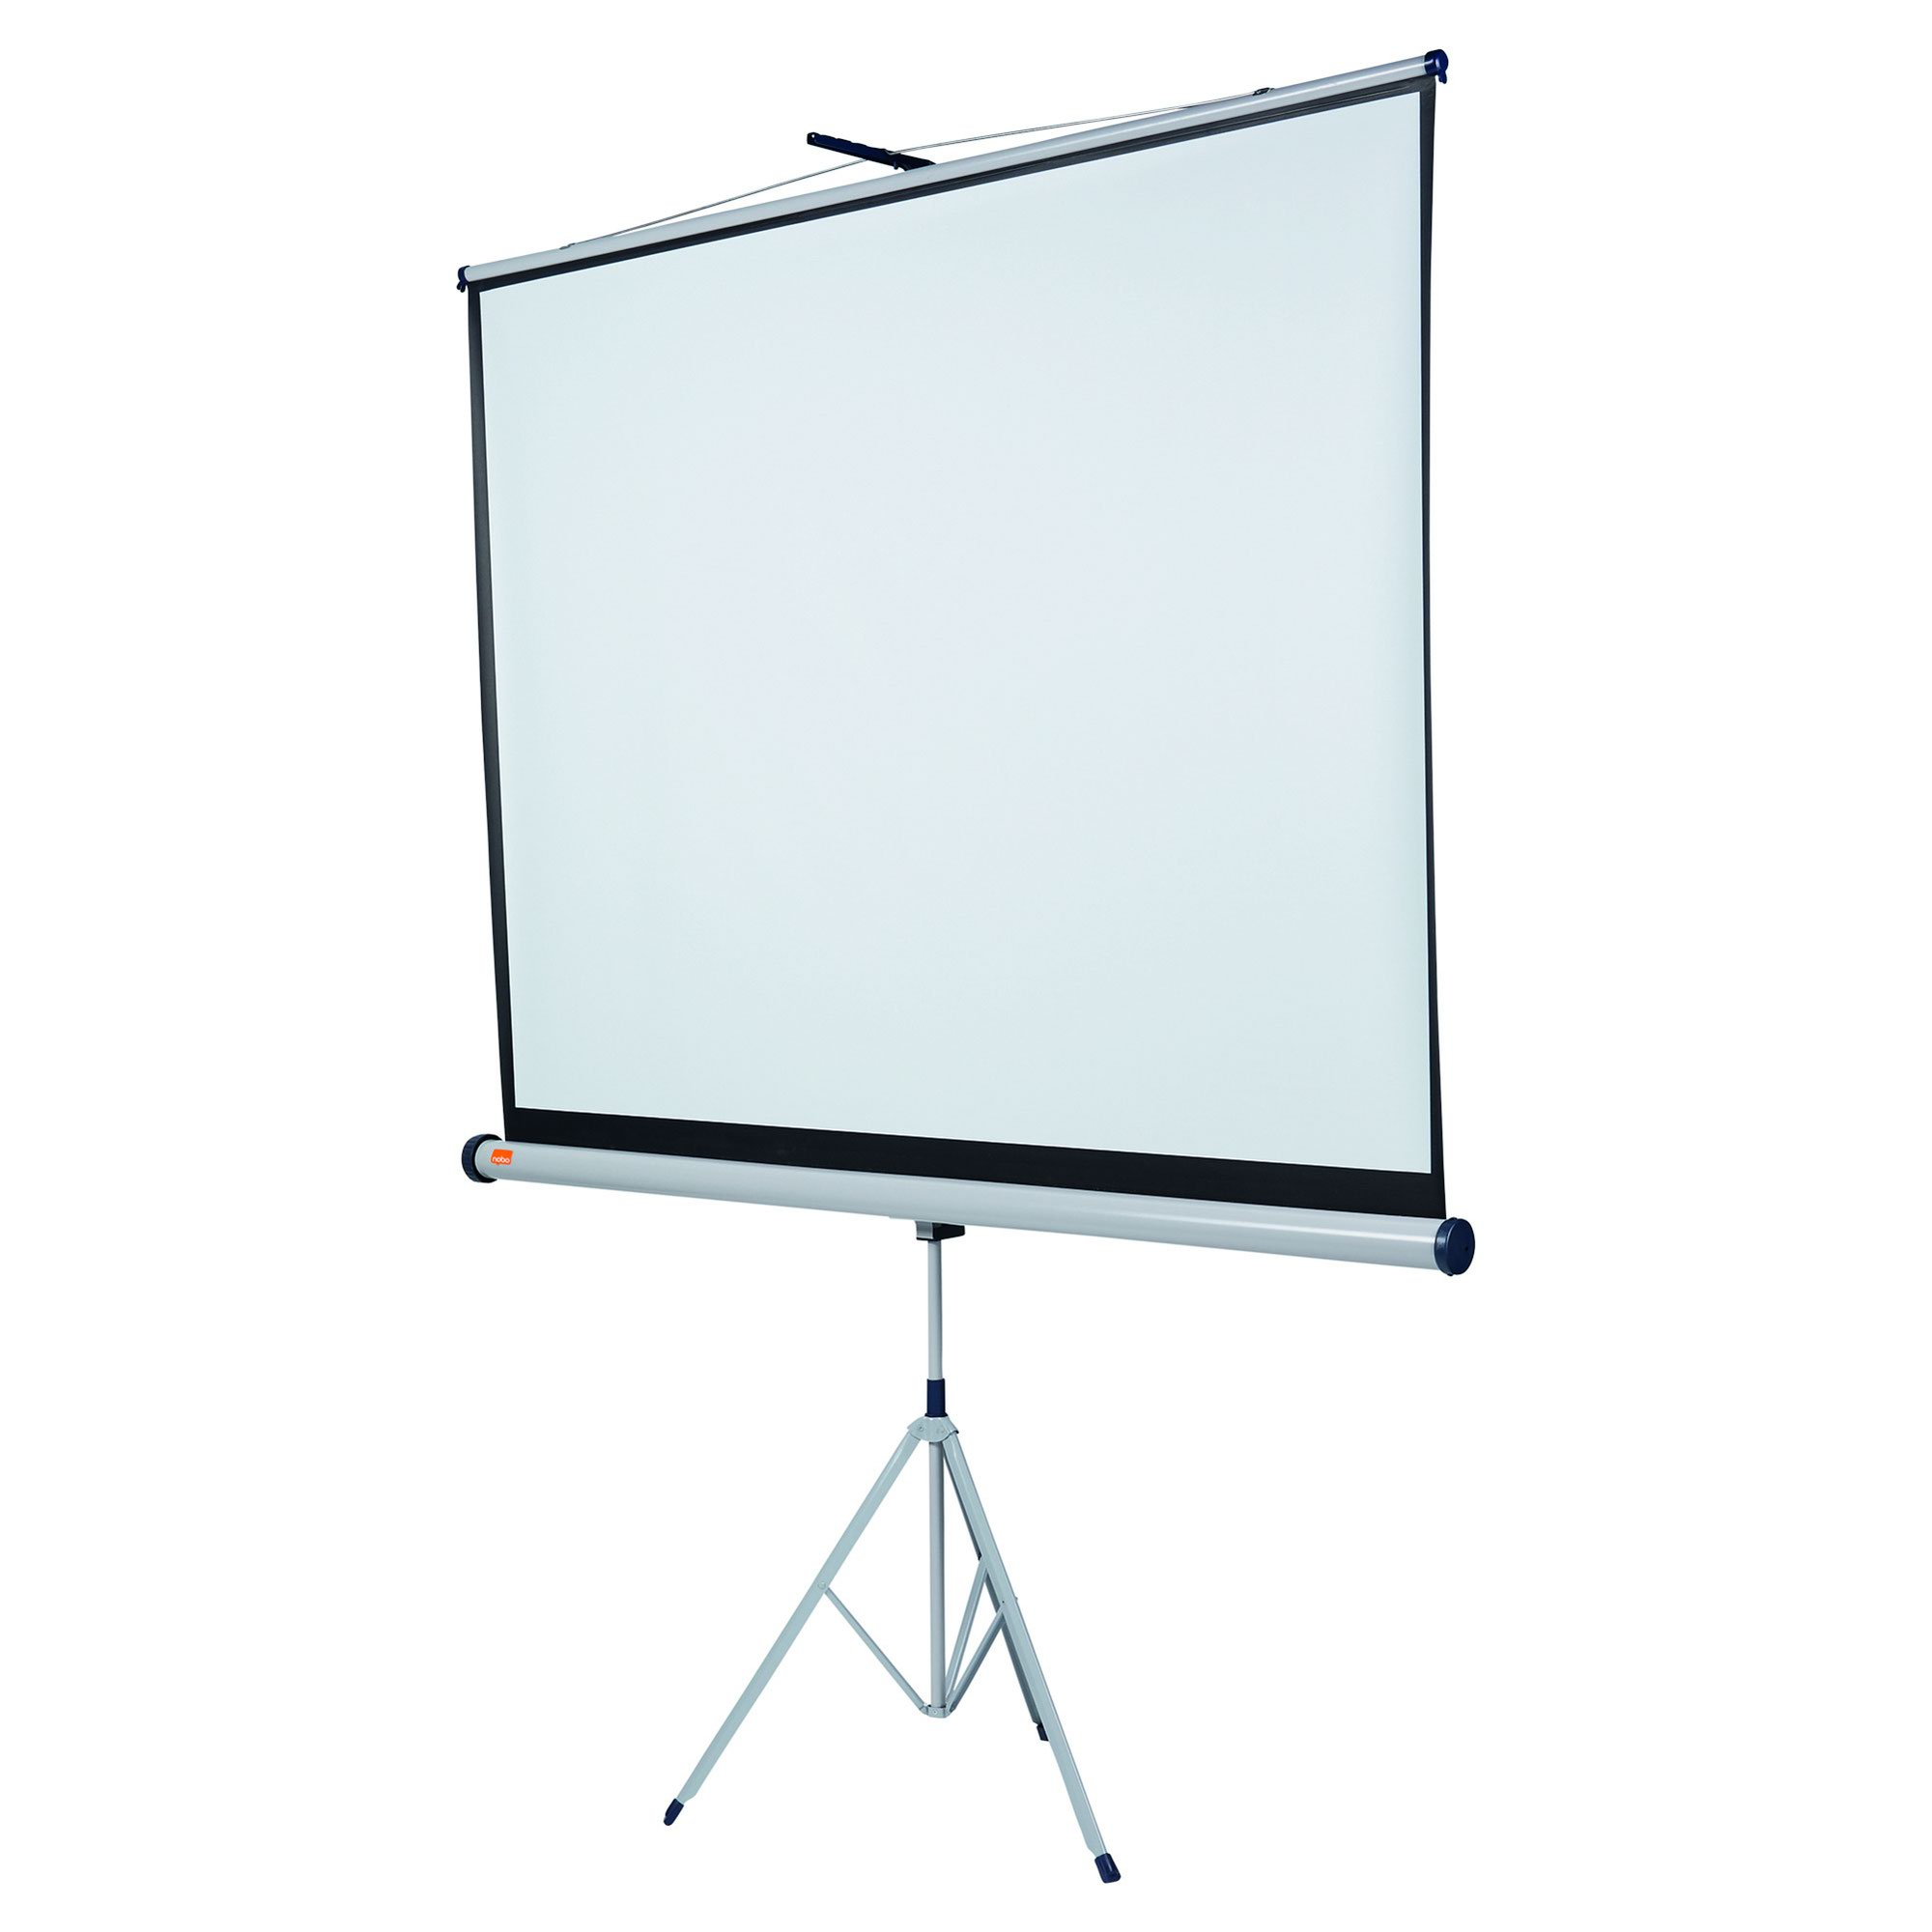 Nobo Tripod Widescreen Projection Screen 1750x1325mm 1902396W